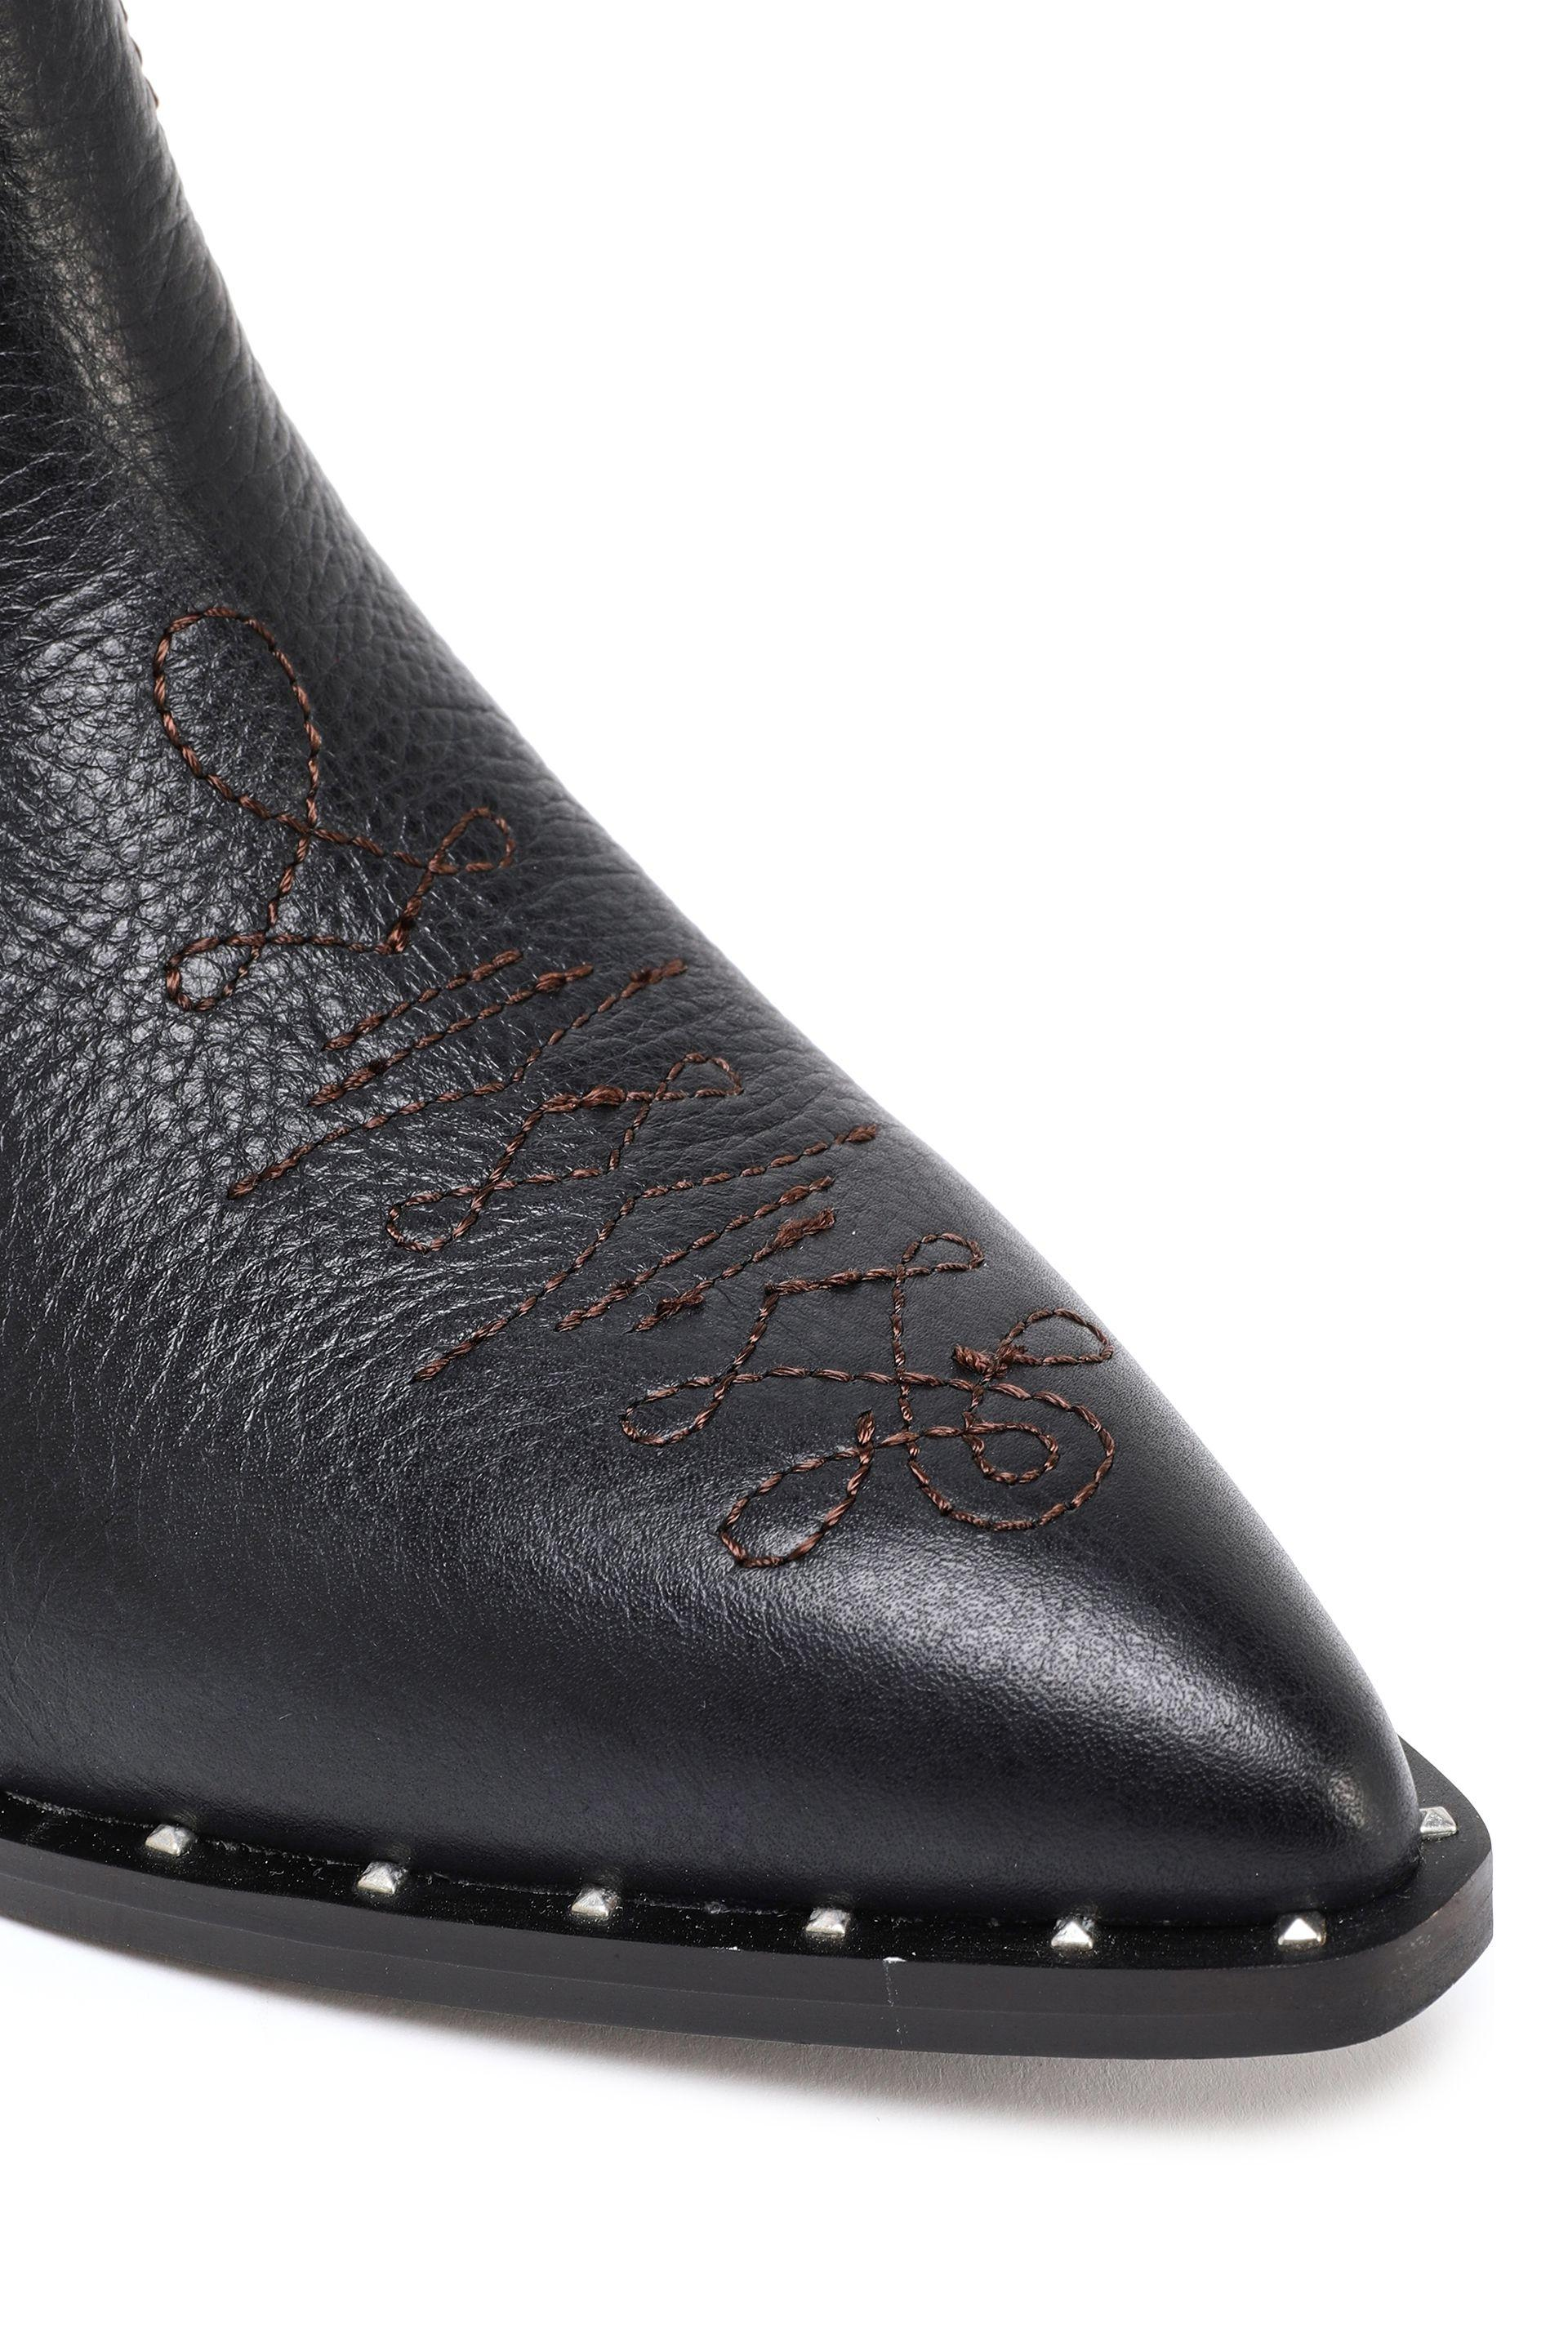 b4e40d334dc7 Sam Edelman - Woman Embroidered Textured-leather Ankle Boots Black - Lyst.  View fullscreen